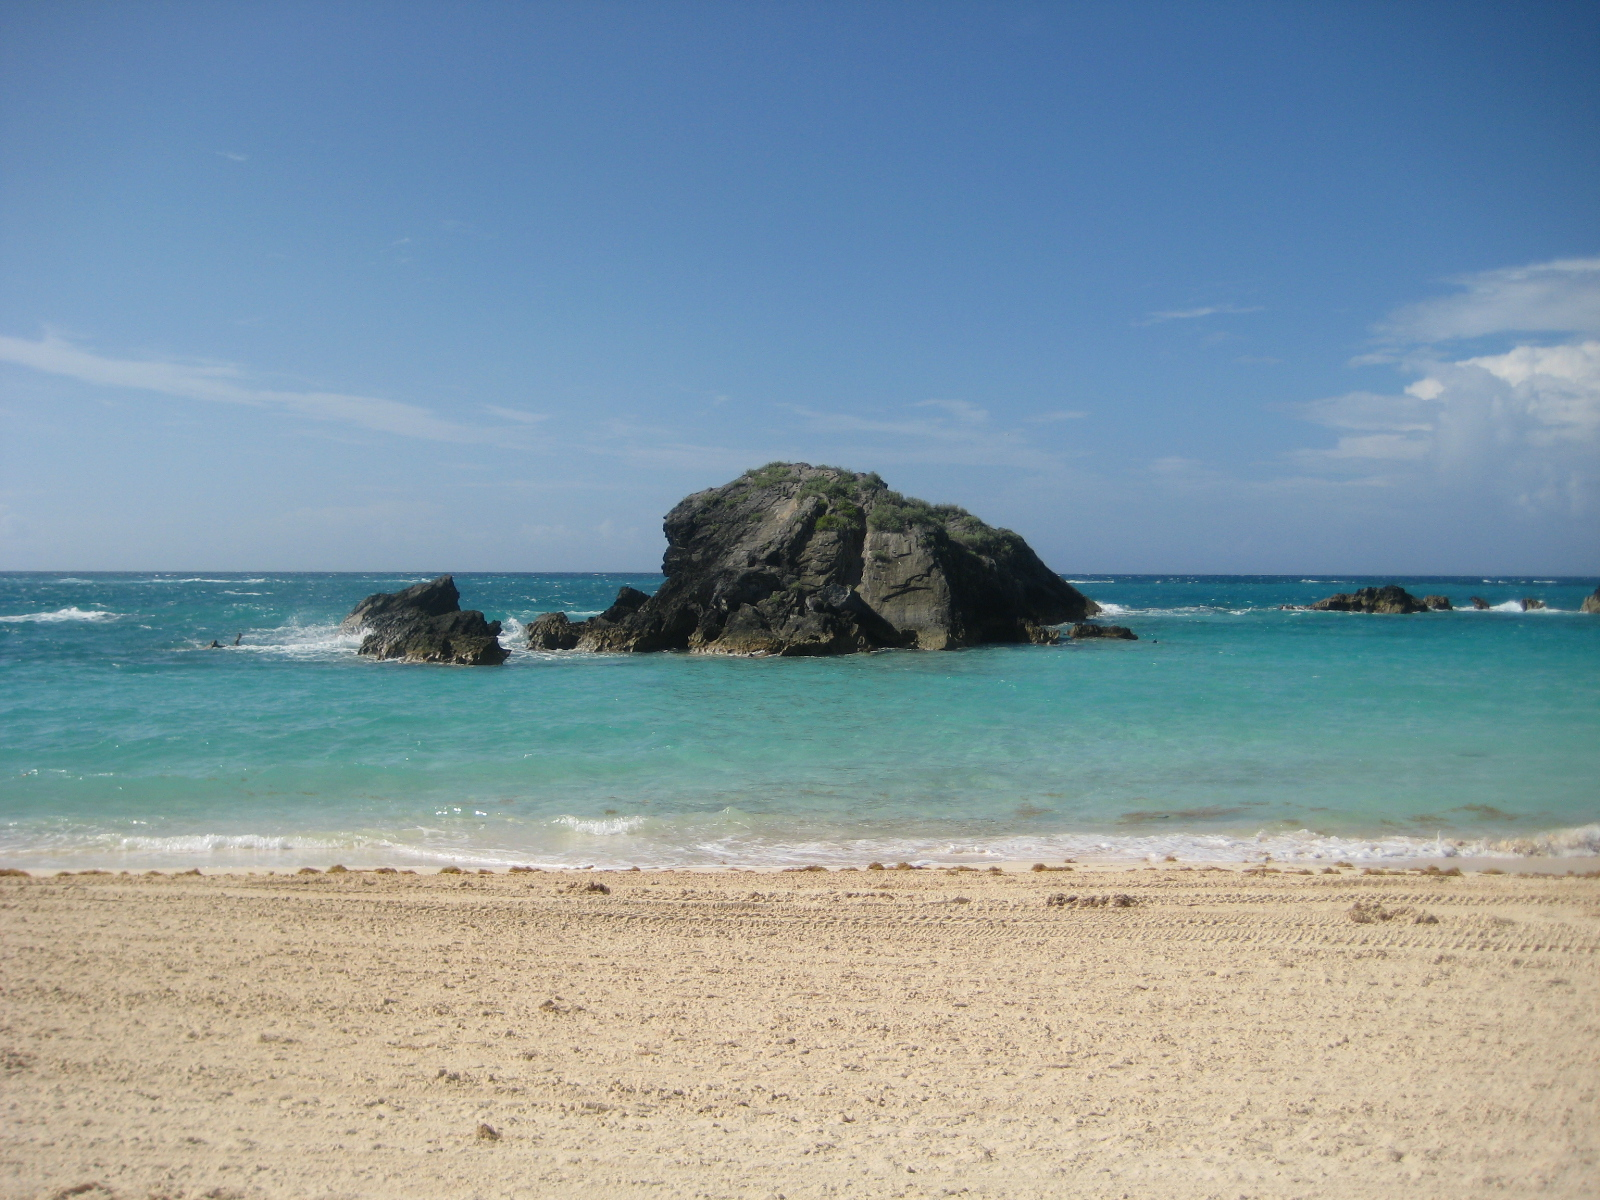 The Beach in Bermuda